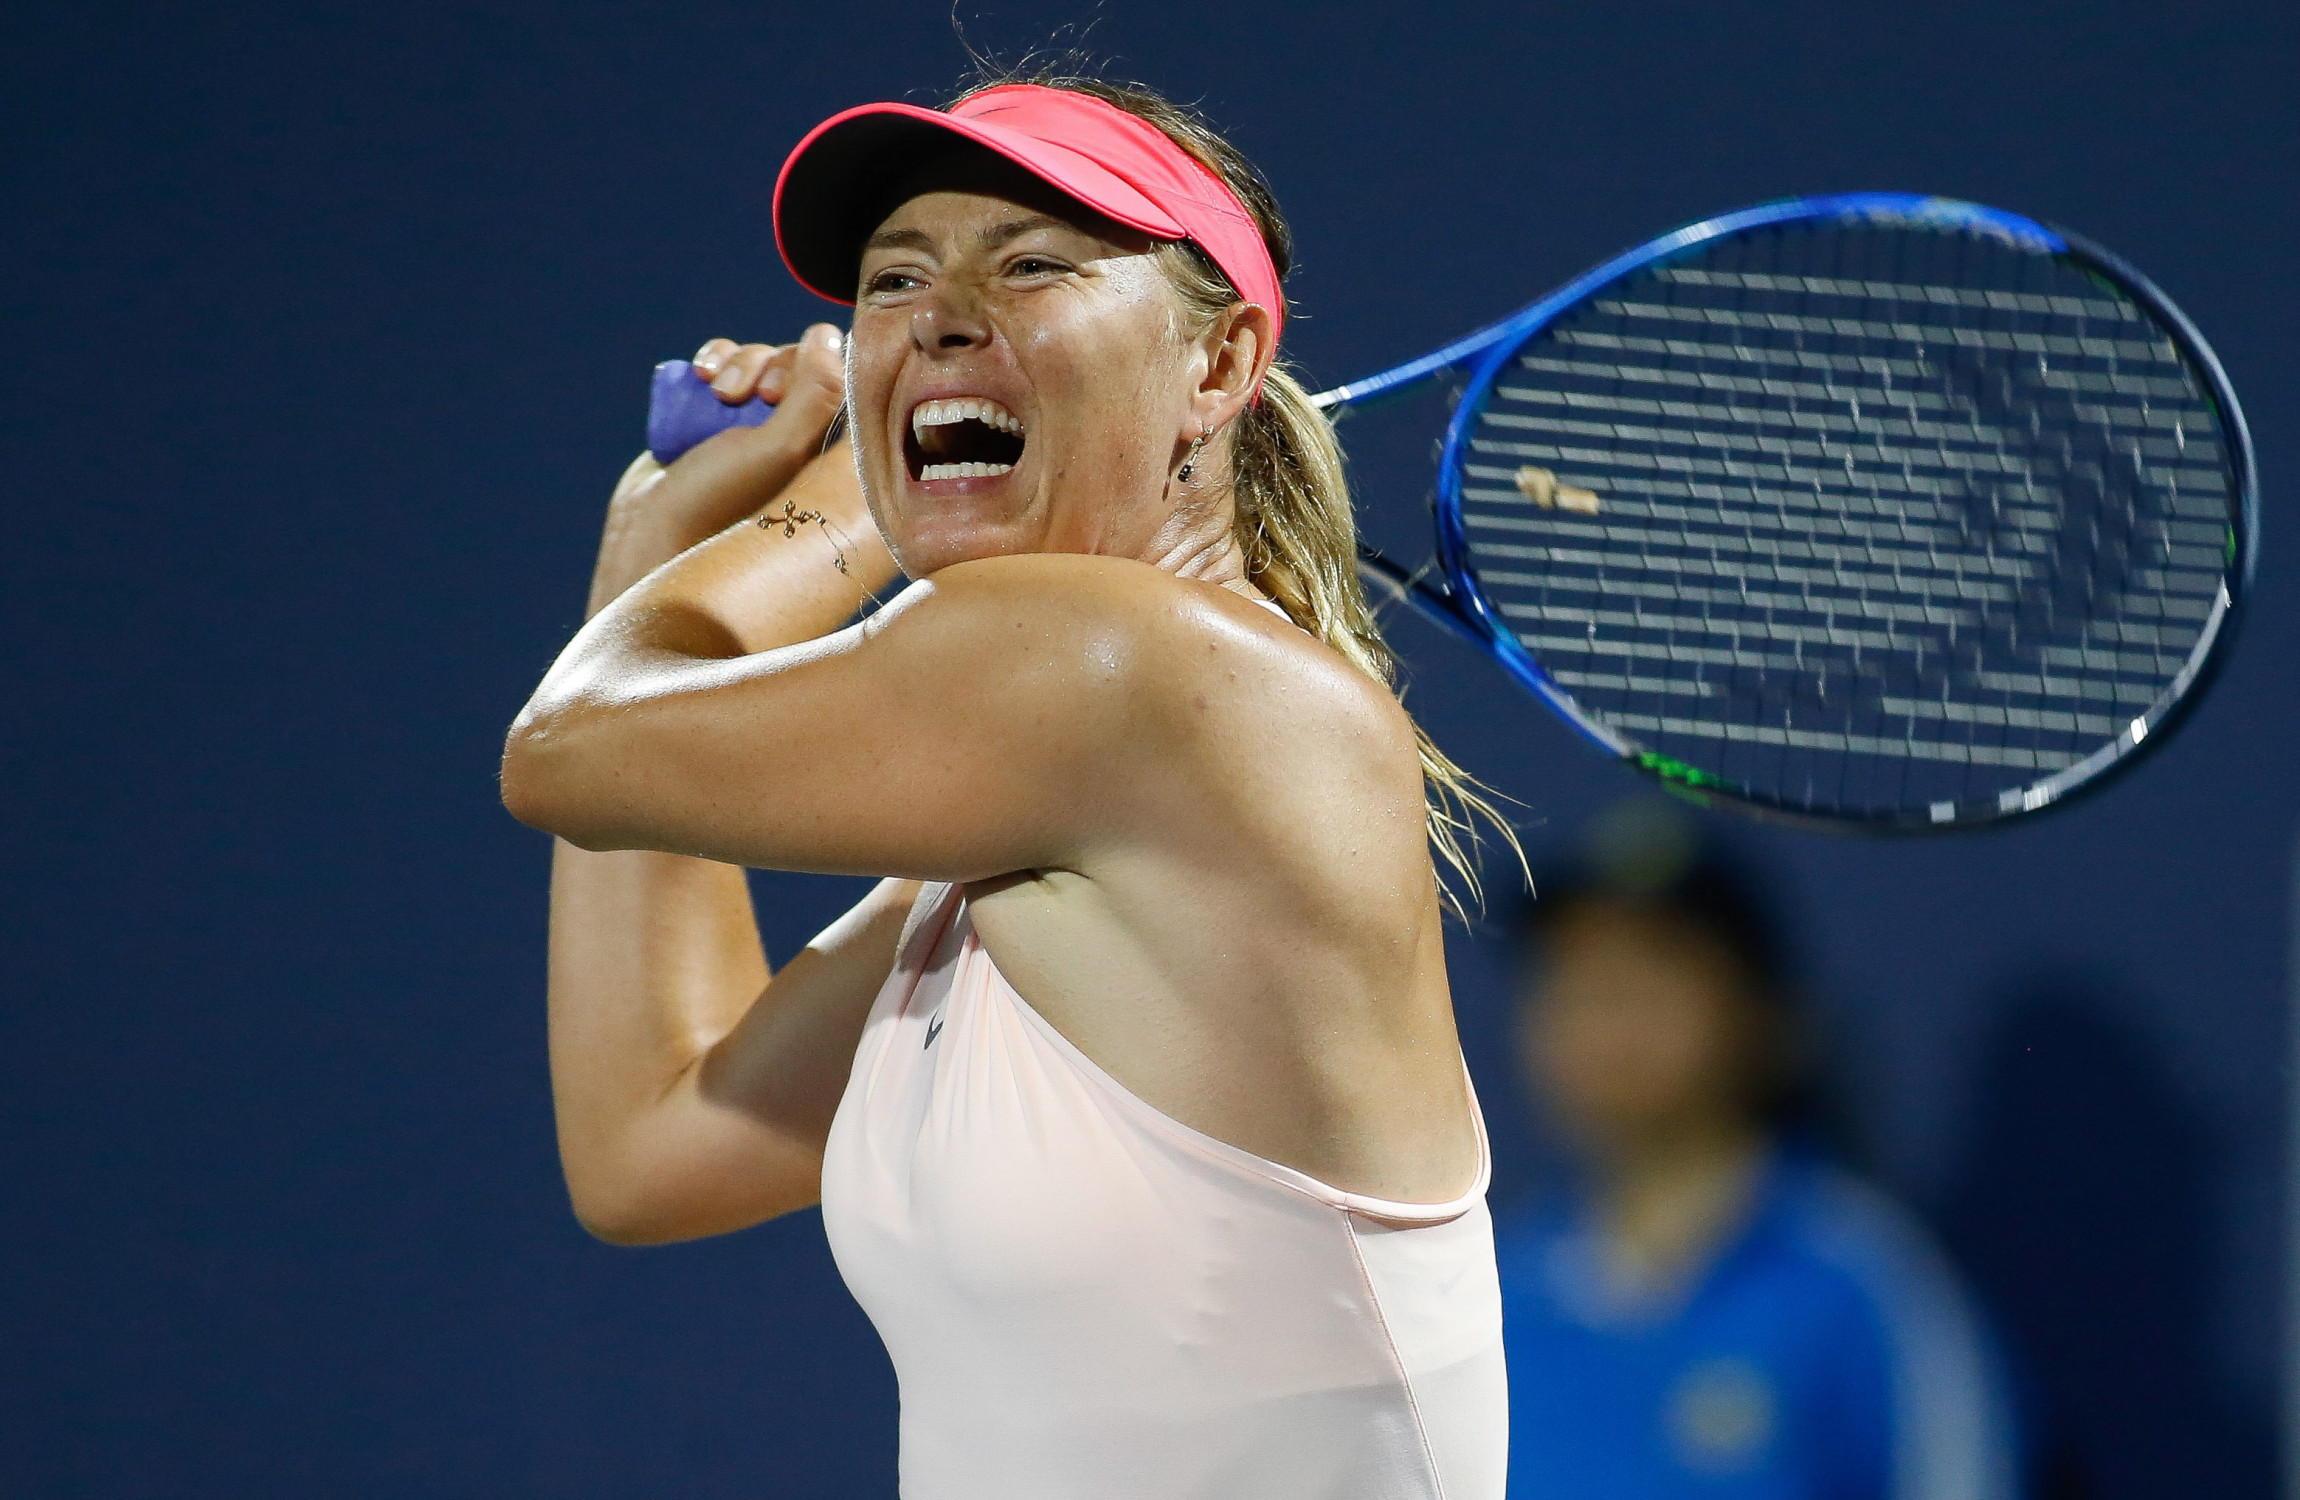 Maria Sharapova awarded main draw wildcard at US Open